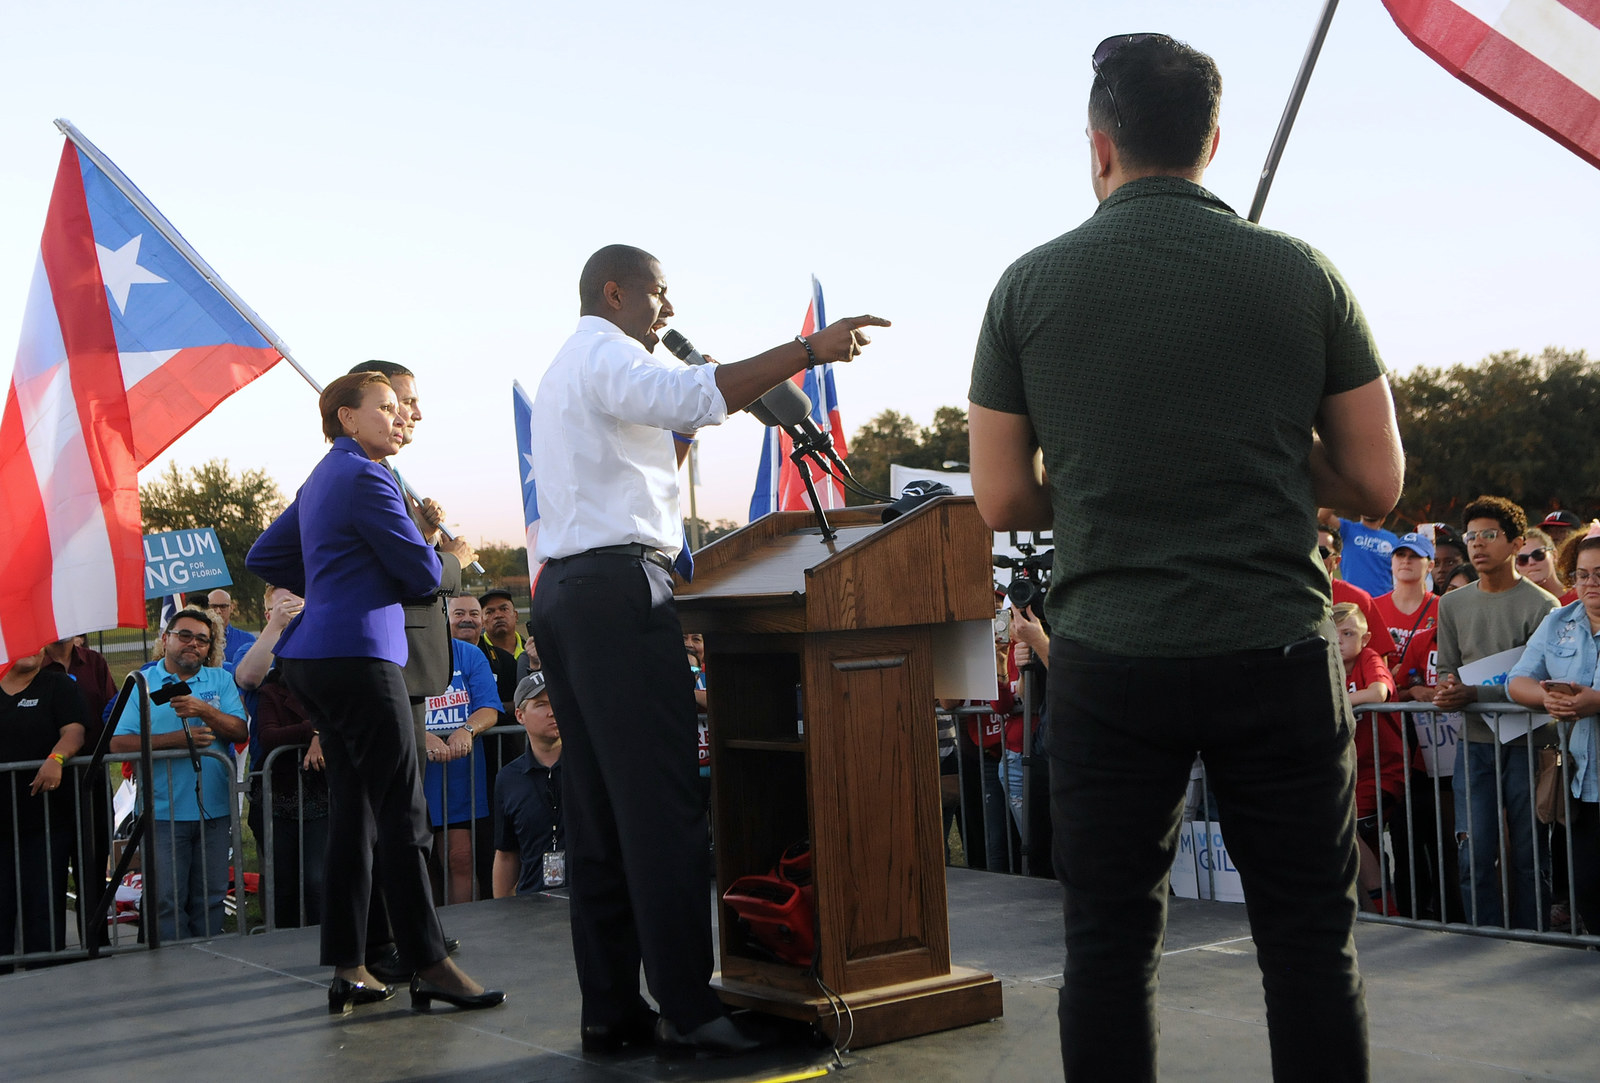 Tallahassee Mayor Andrew Gillum, the Democratic candidate for governor, speaks to supporters at a rally in Kissimmee on Oct. 28.